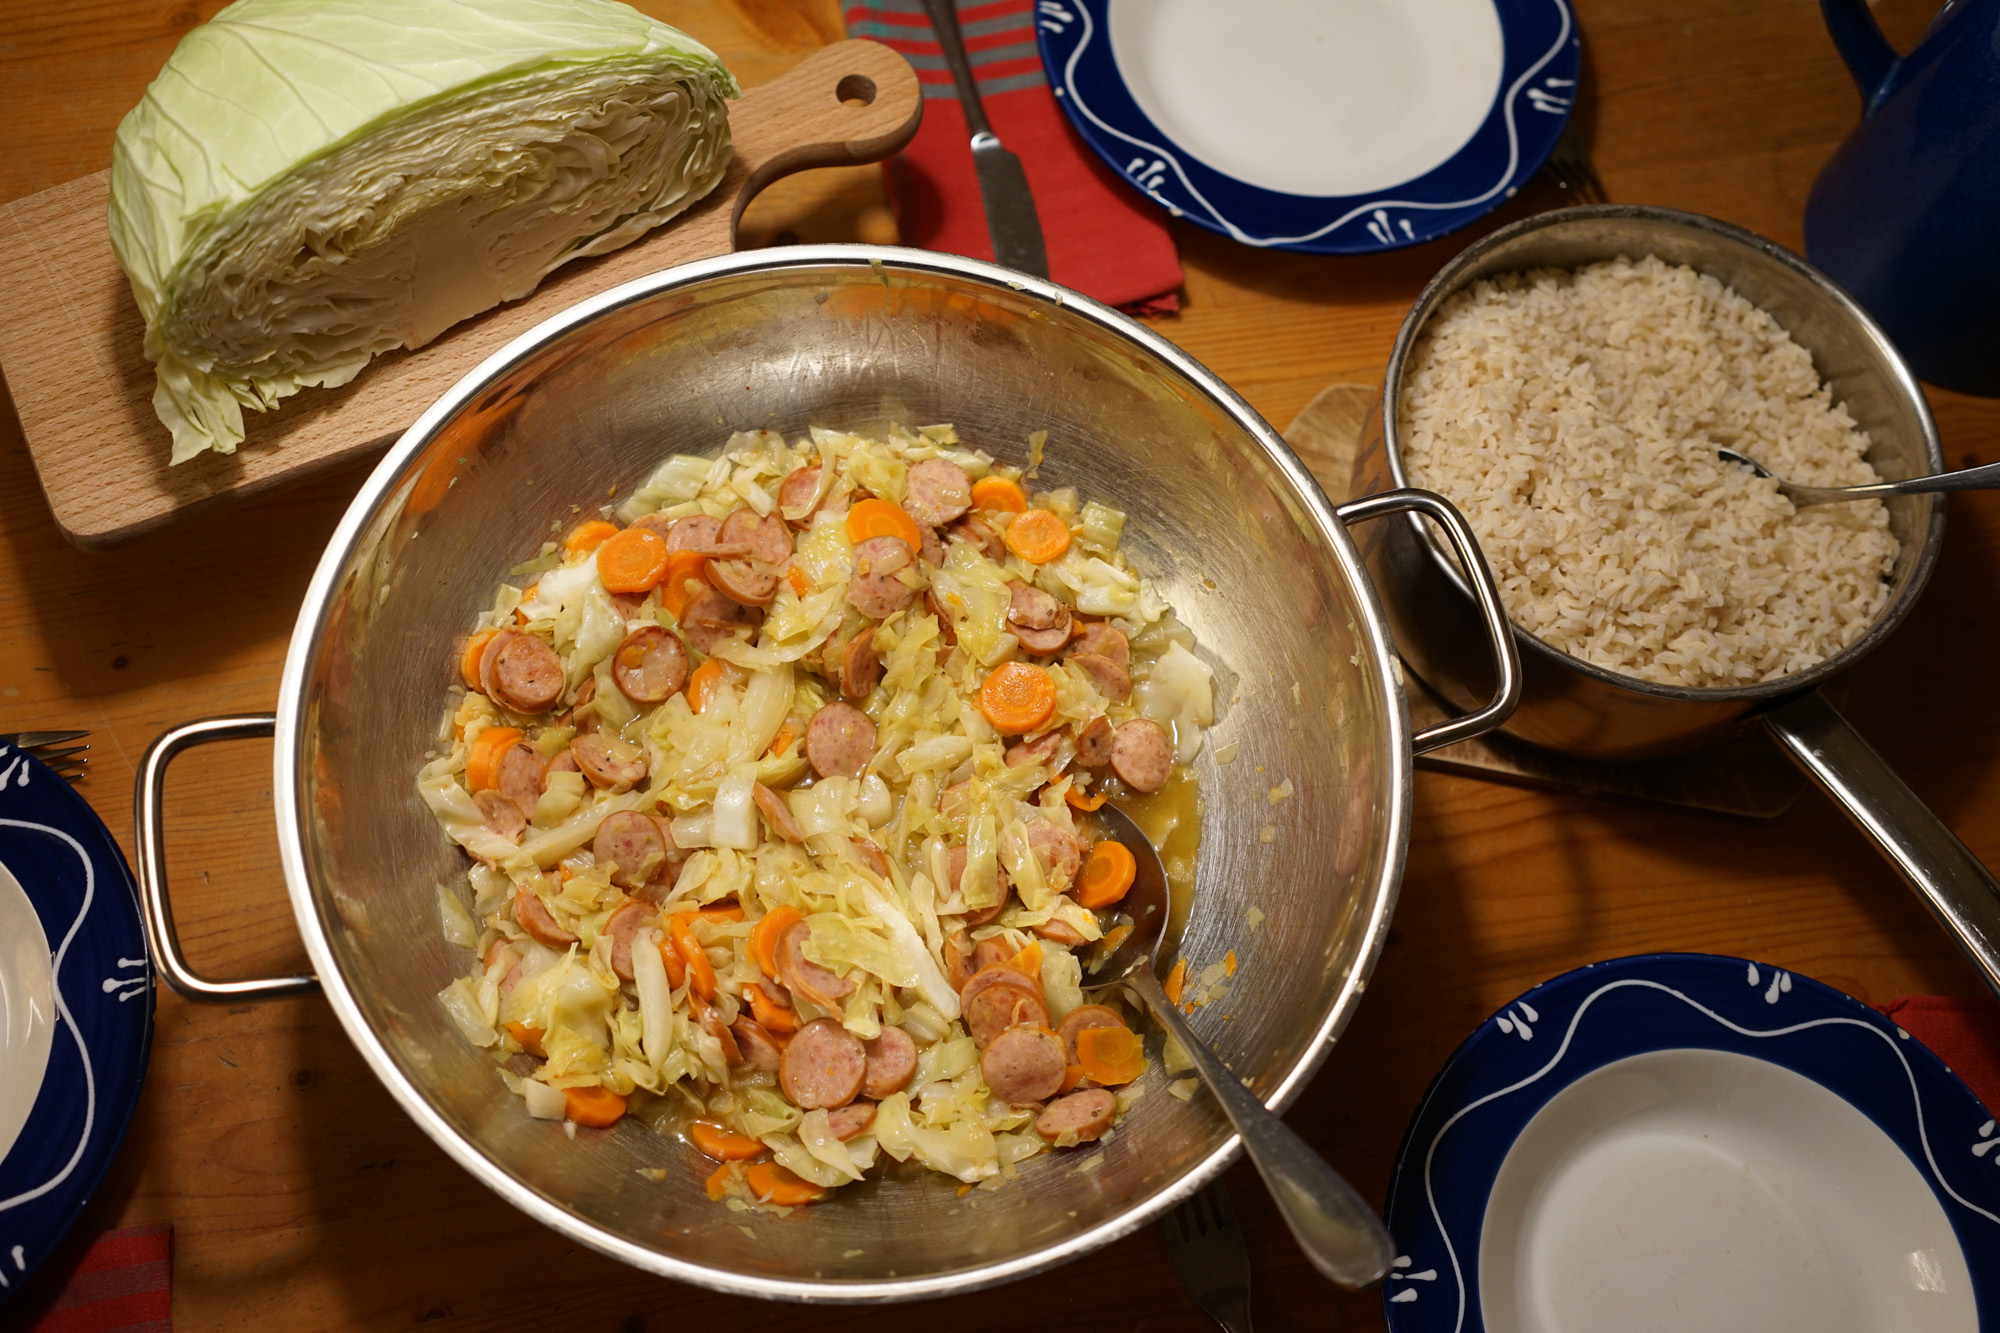 wok with sliced cabbage, carrots and kielbasa sausage next to a pot of brown rice and a flat variety cabbage cut in half